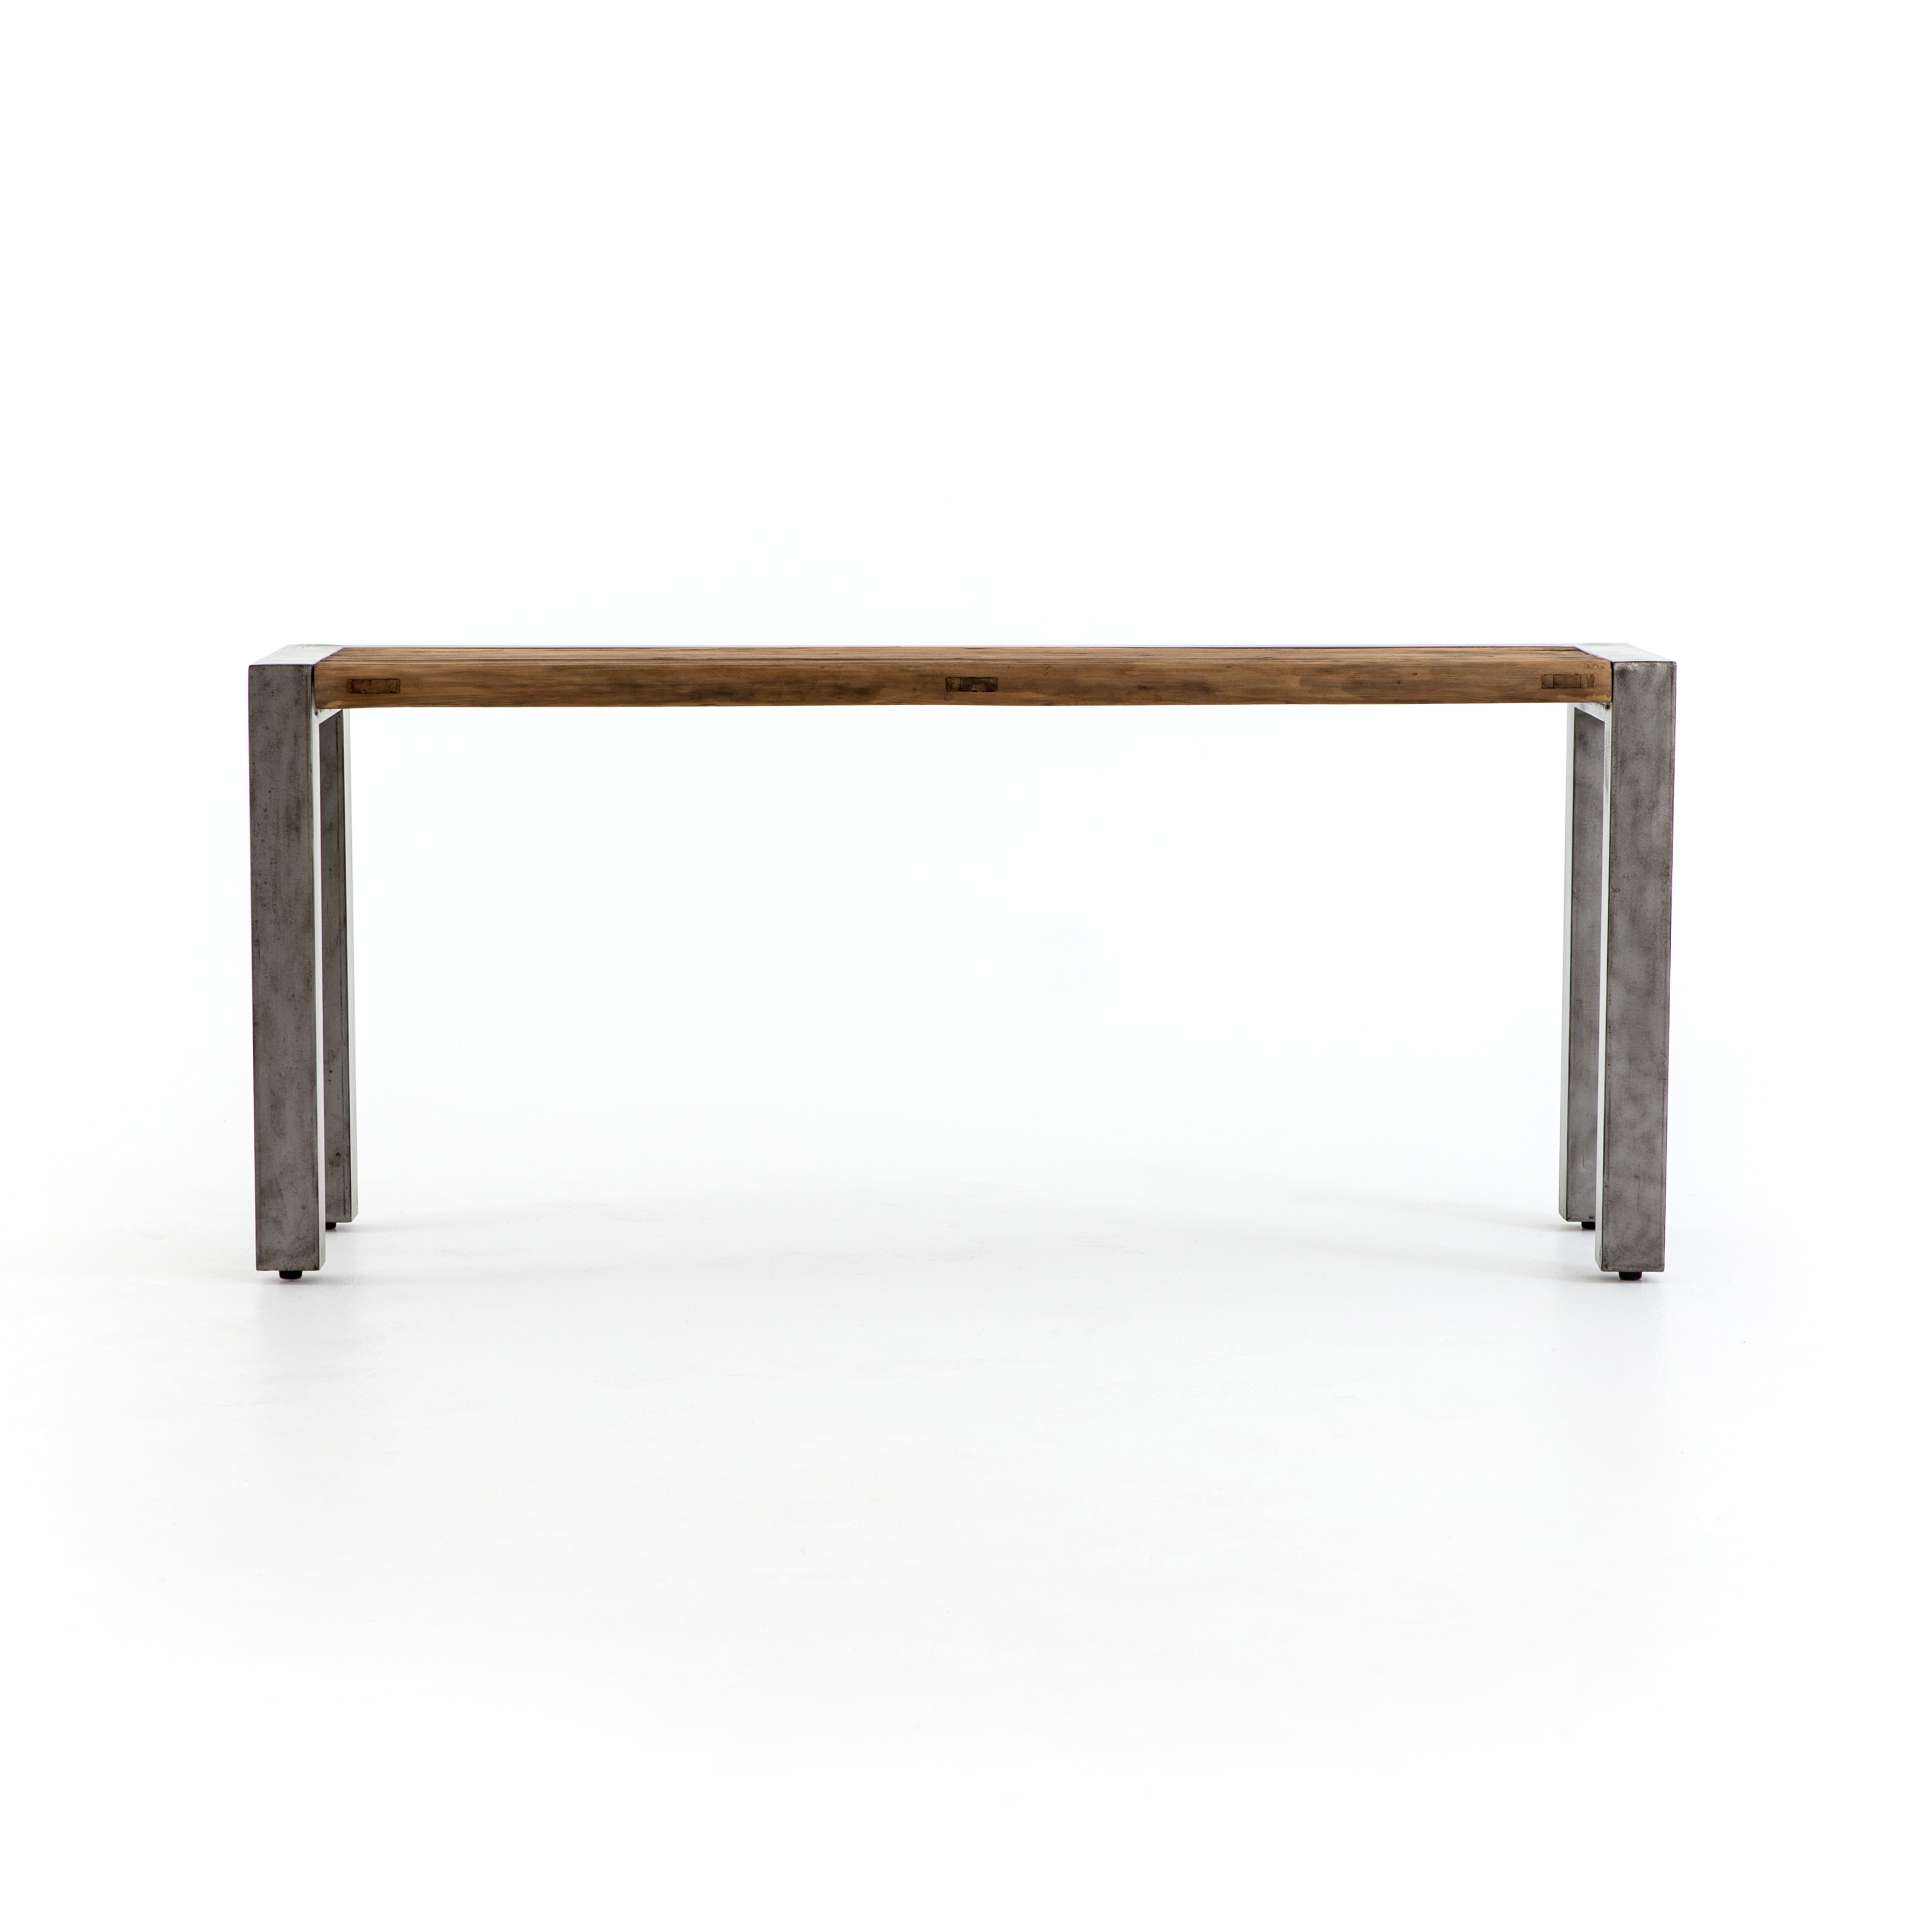 Reclaimed Wood Console Tables You'll Love | Wayfair With Mix Patina Metal Frame Console Tables (View 10 of 20)